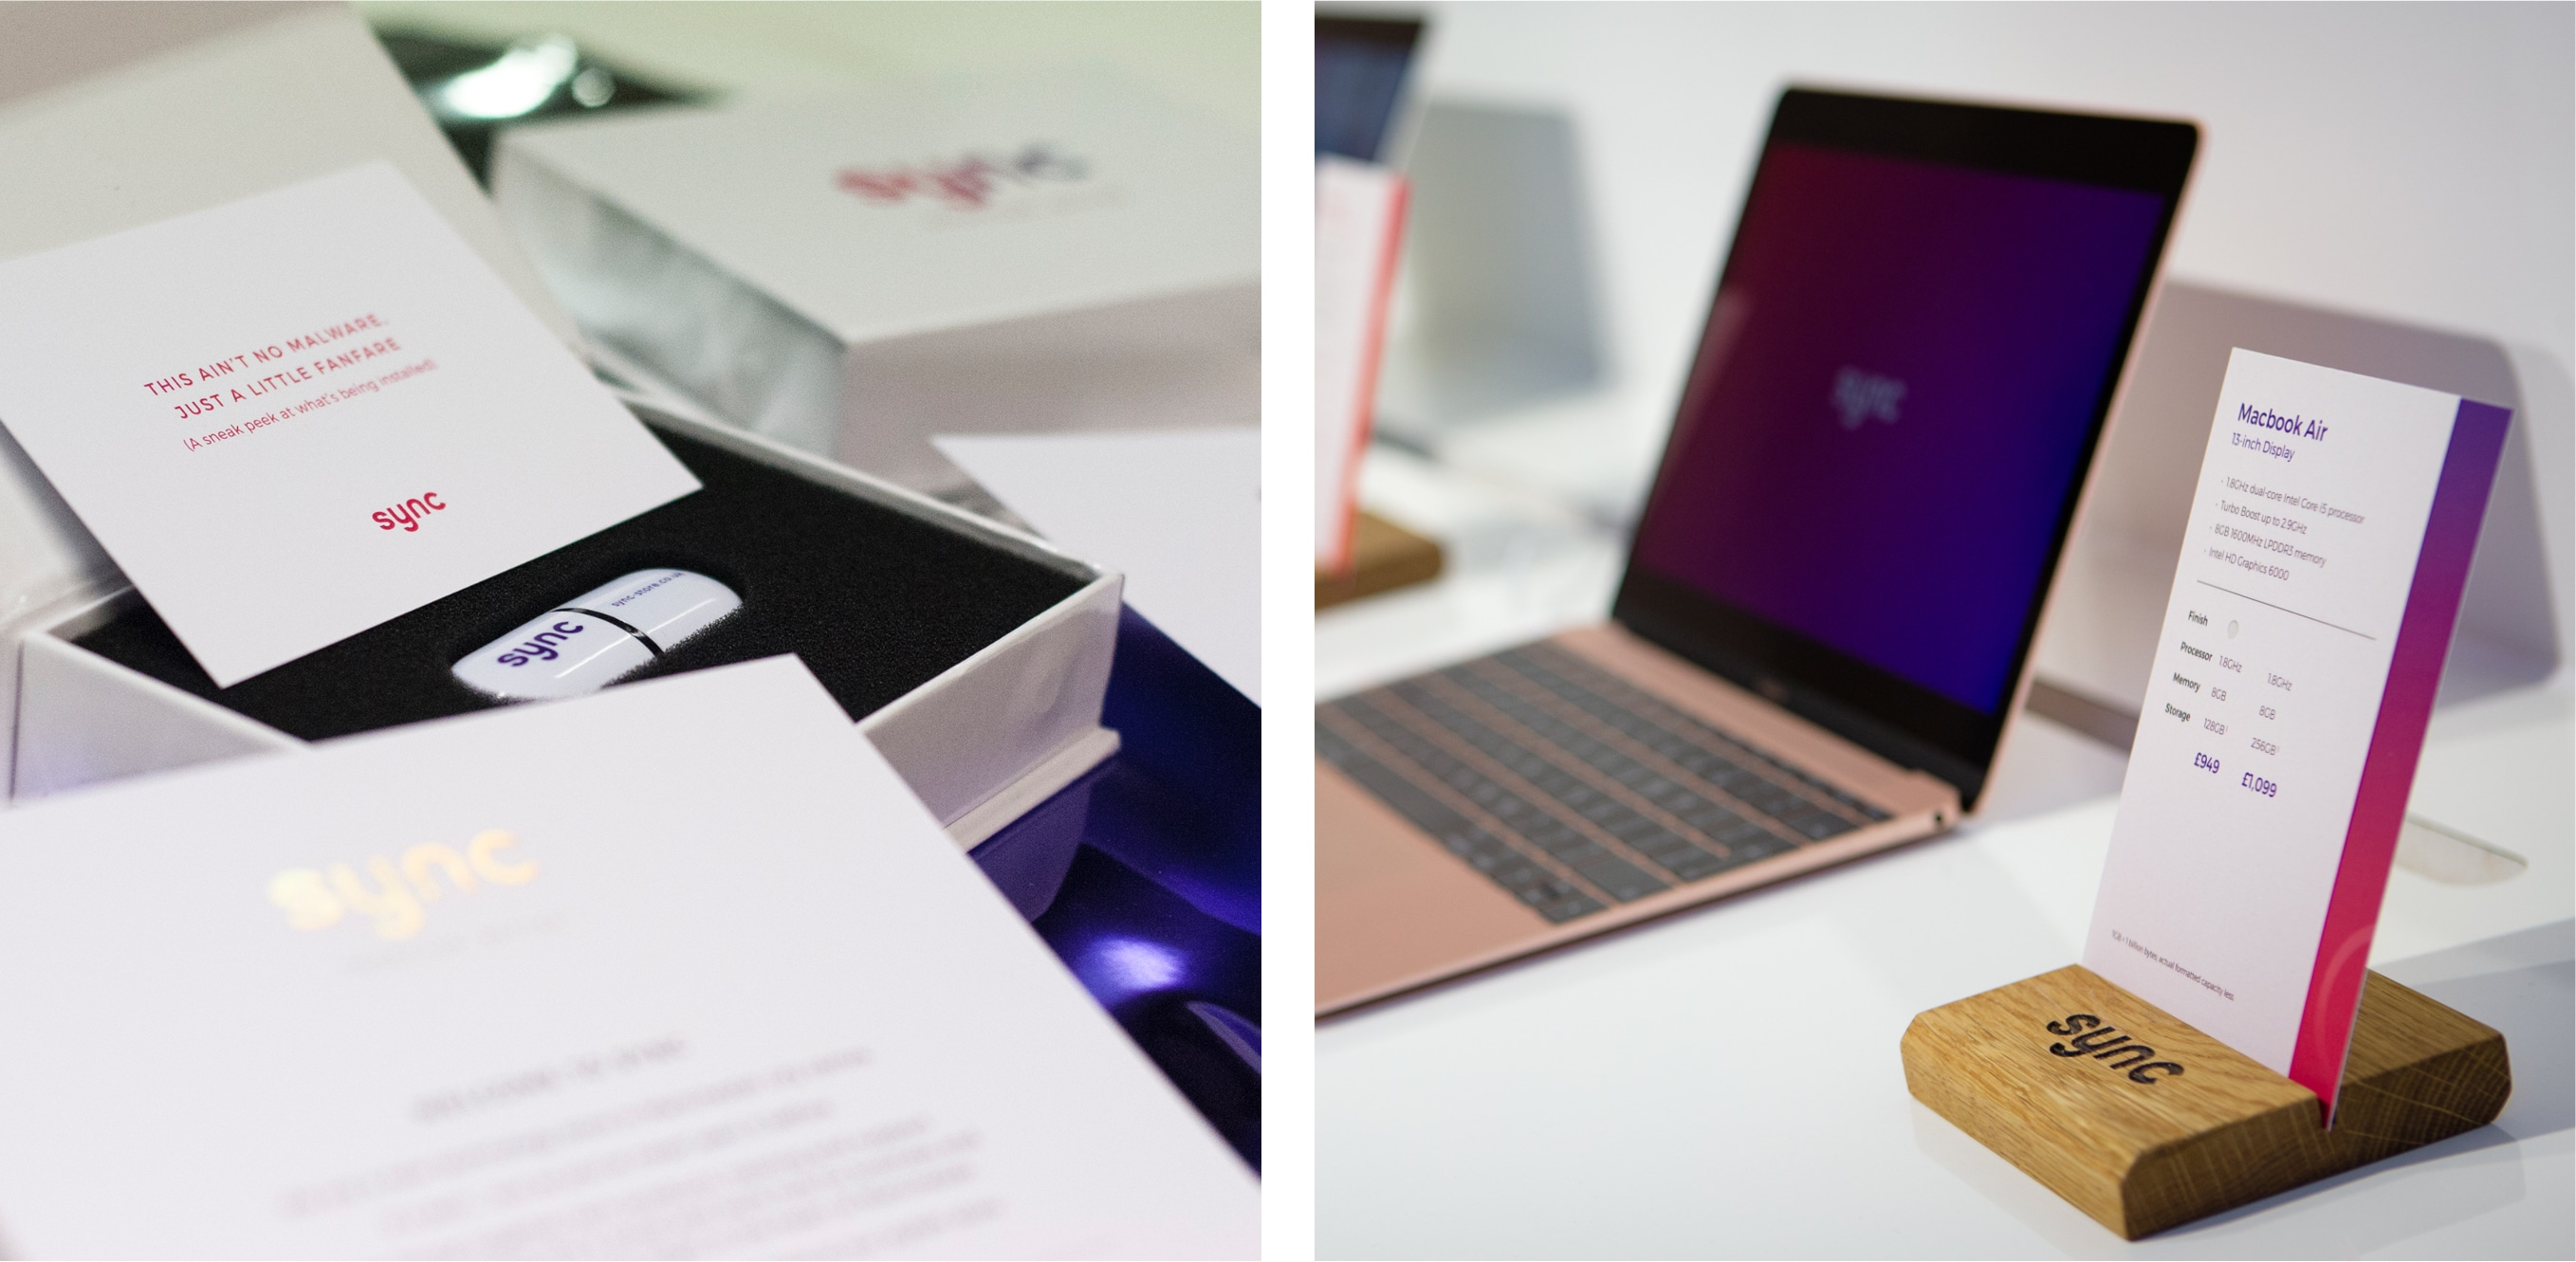 sync invite and product cards